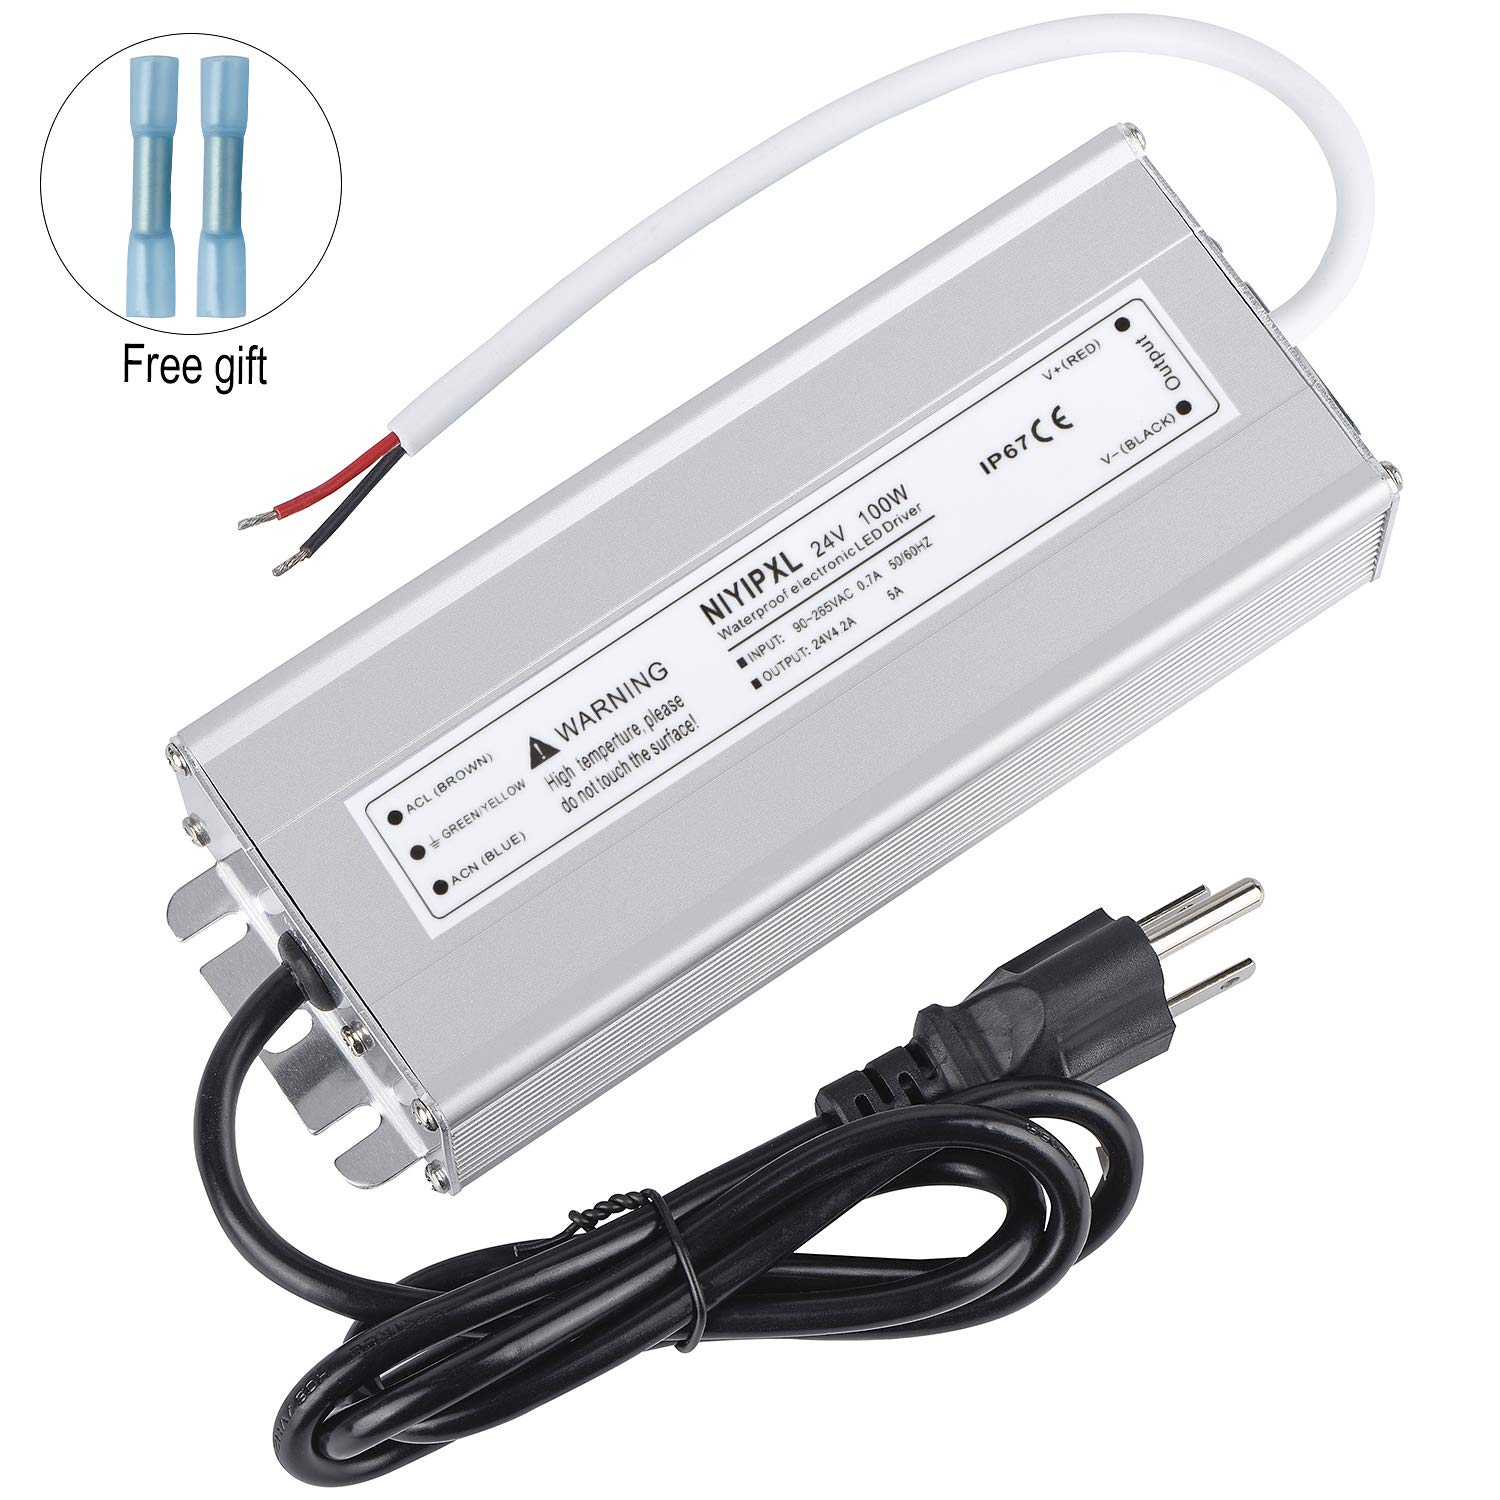 LED Driver 100 Watts 24V DC Low Voltage Transformer, Waterproof IP67 LED Power Supply, Adapter with 3-Prong Plug 3.3 Feet Cable for Any 24V DC led Lights, Computer Project, Outdoor Light